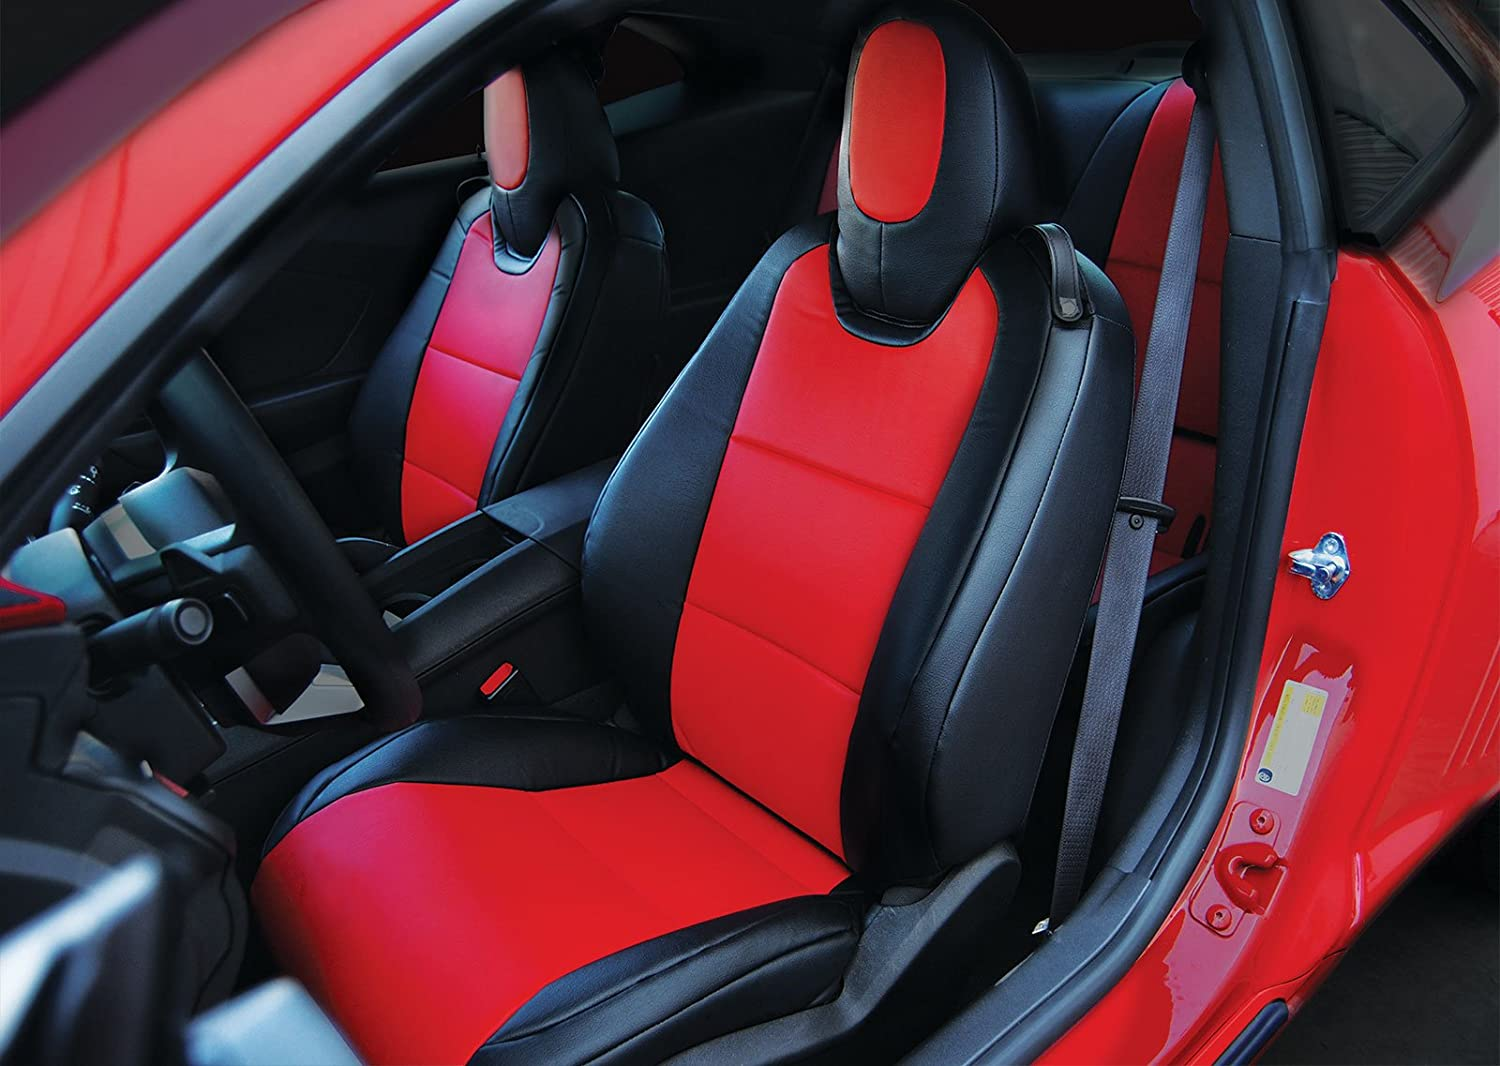 2010 camaro seat covers velcromag. Black Bedroom Furniture Sets. Home Design Ideas